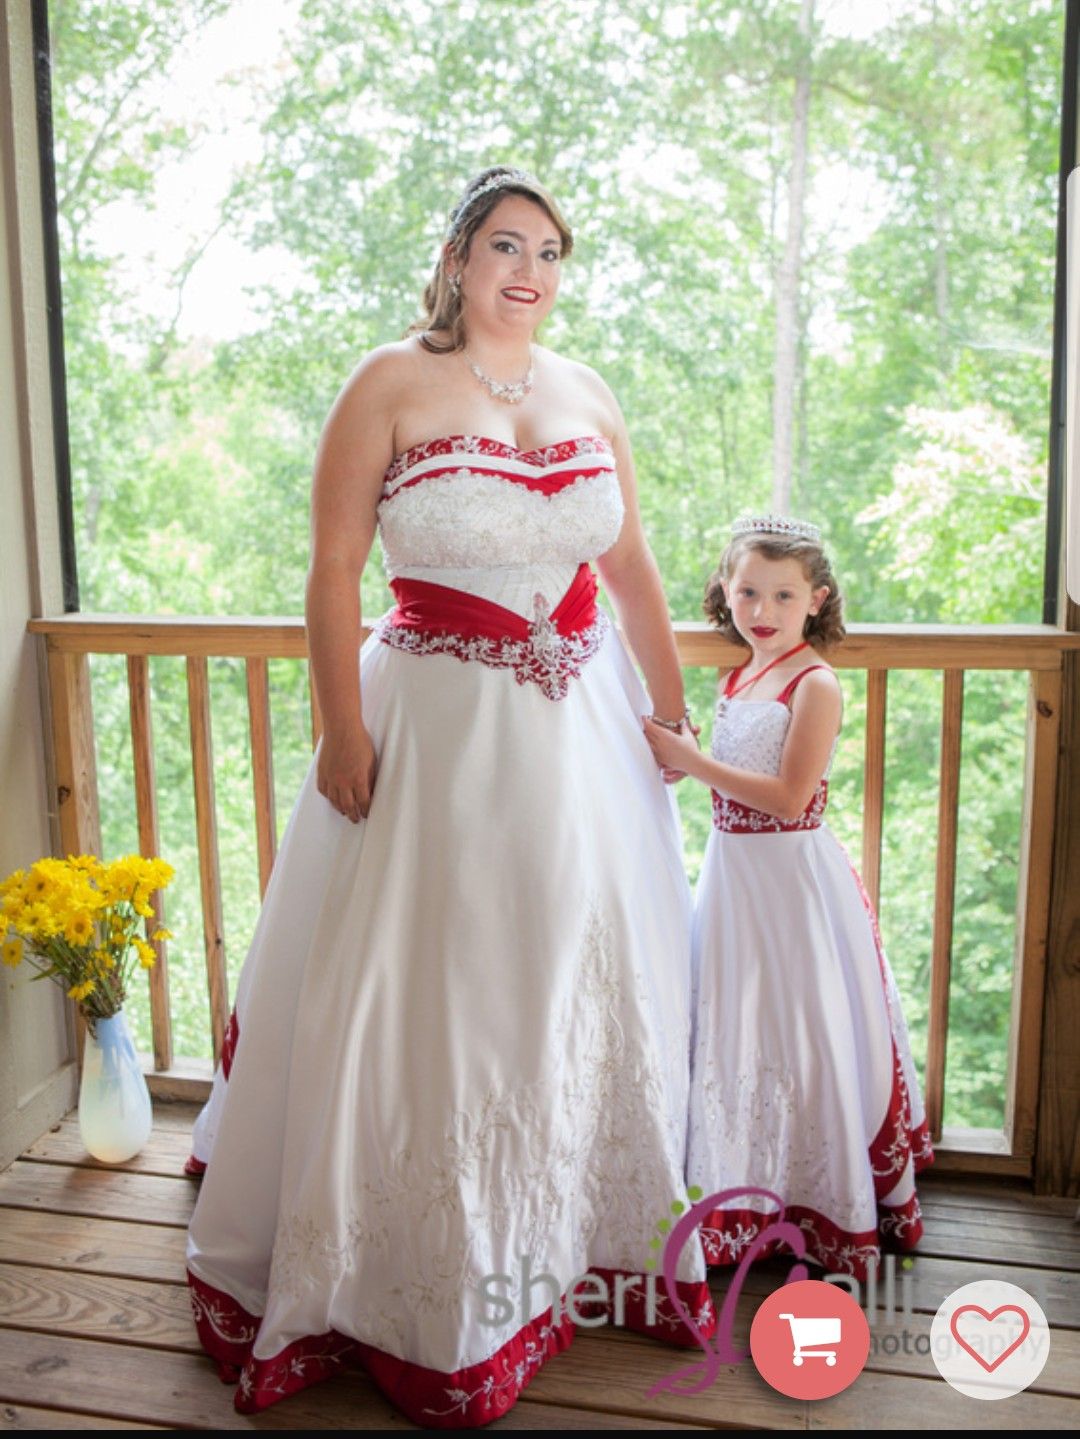 White And Red Matching Flower Girl And Bride Dresses